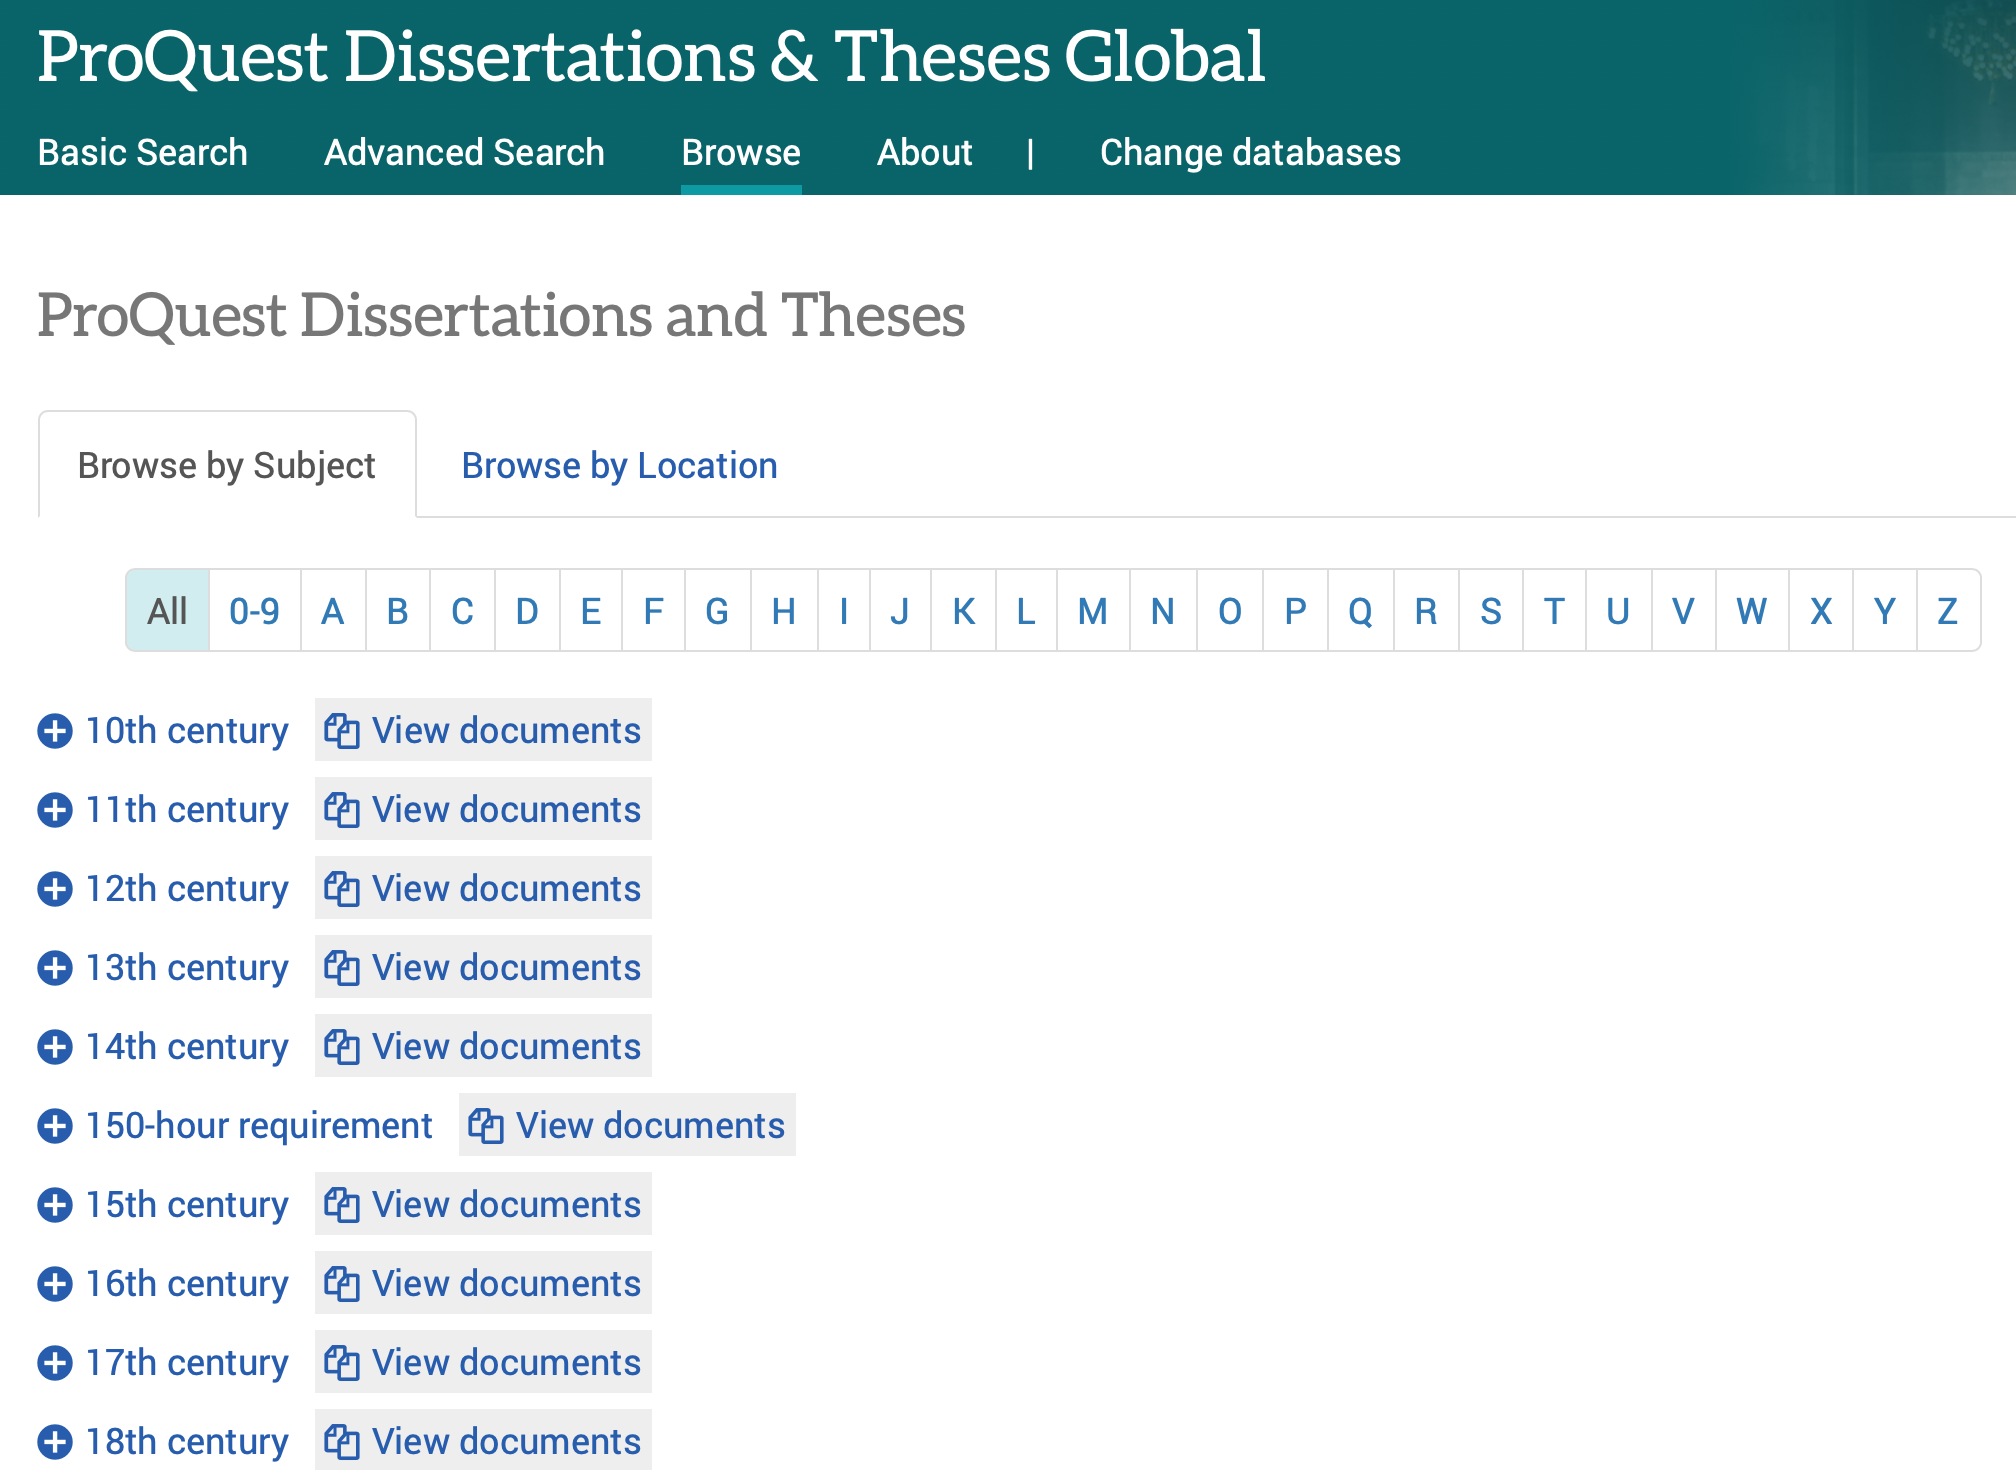 Image showing ProQuest Dissertations & Theses Browse Search screen.